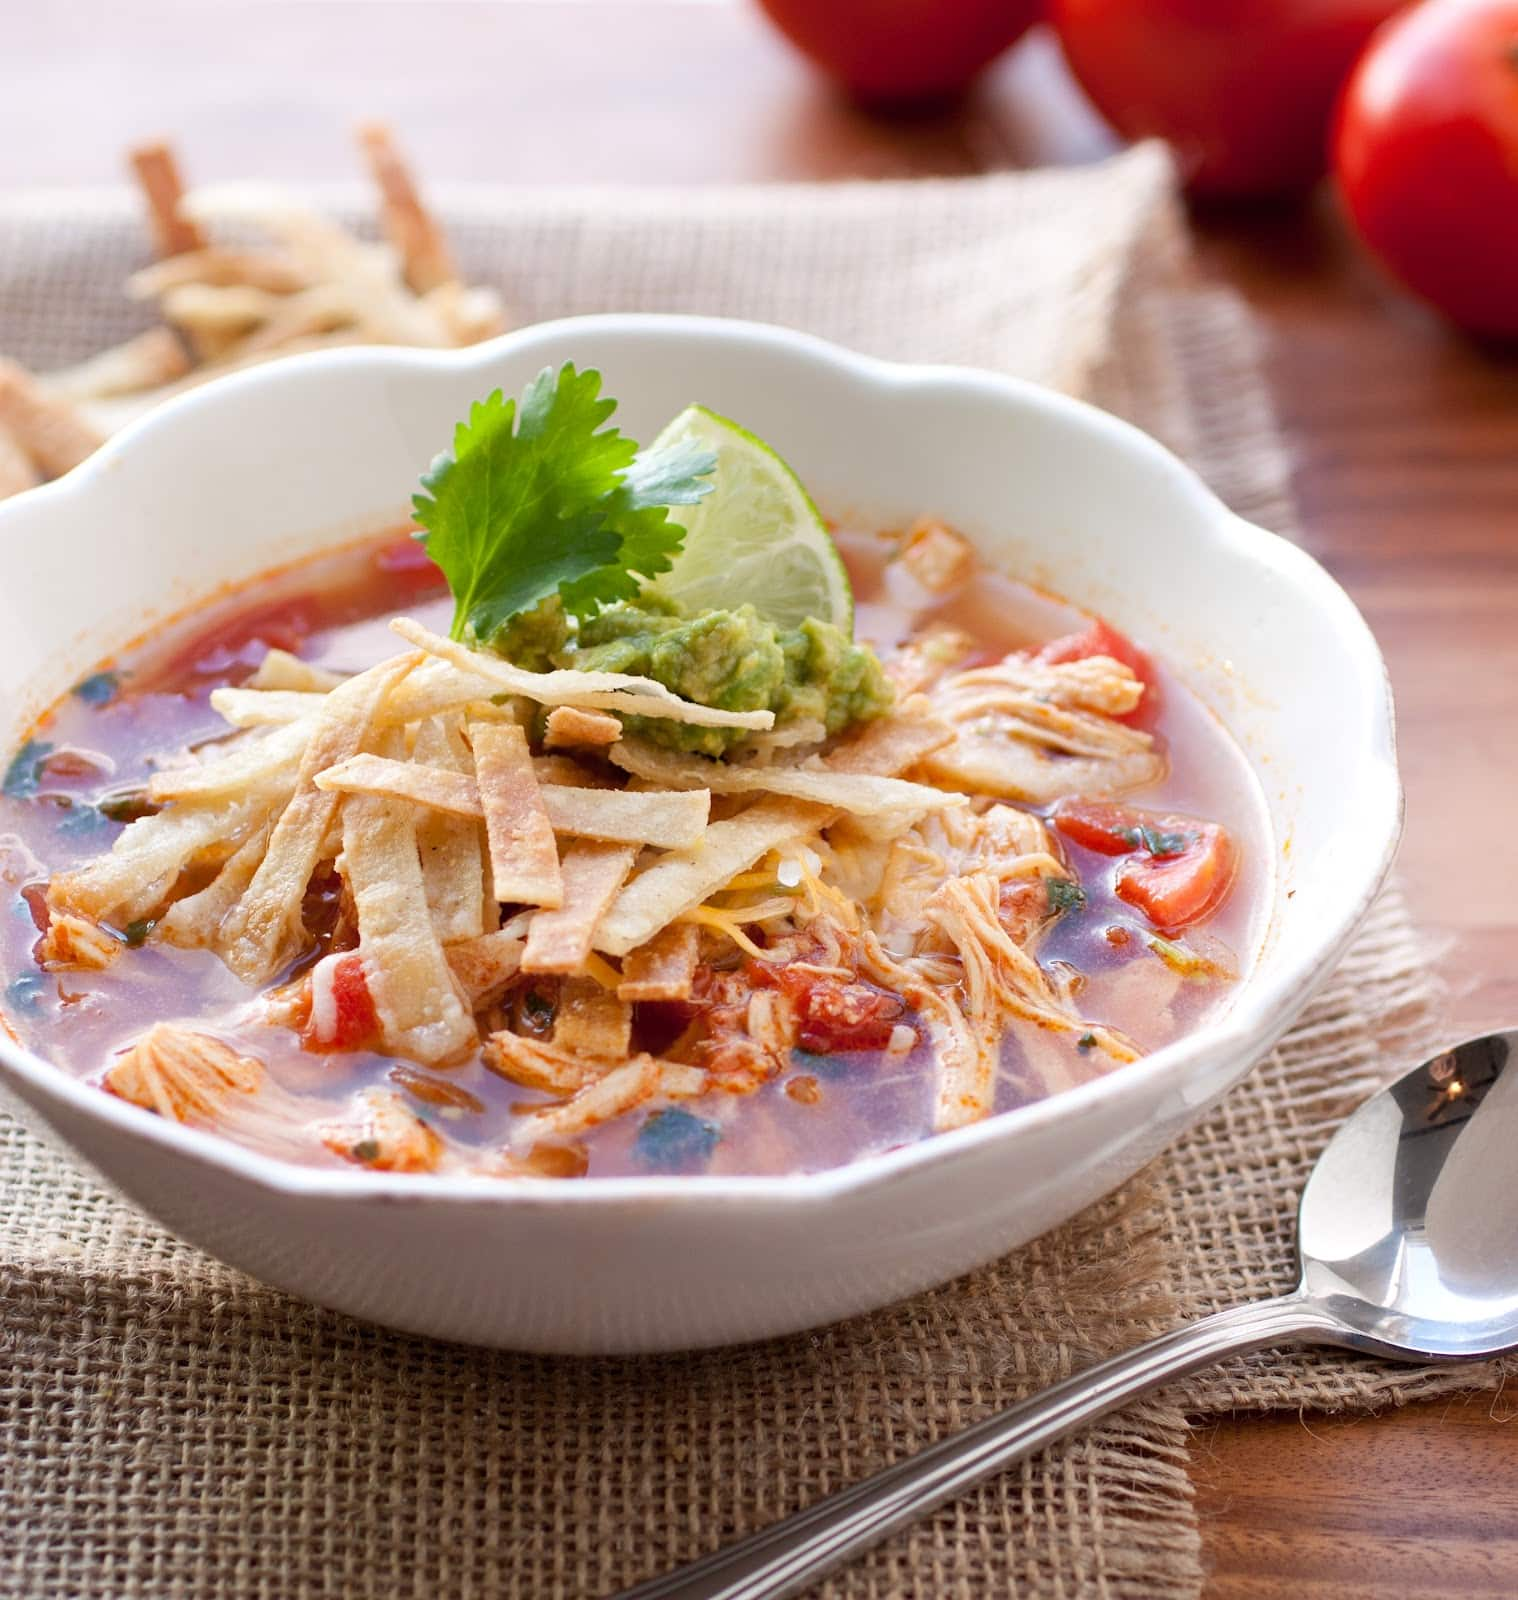 ... Source : http://debbienet.com/chicken-tortilla-soup-slow-cooker